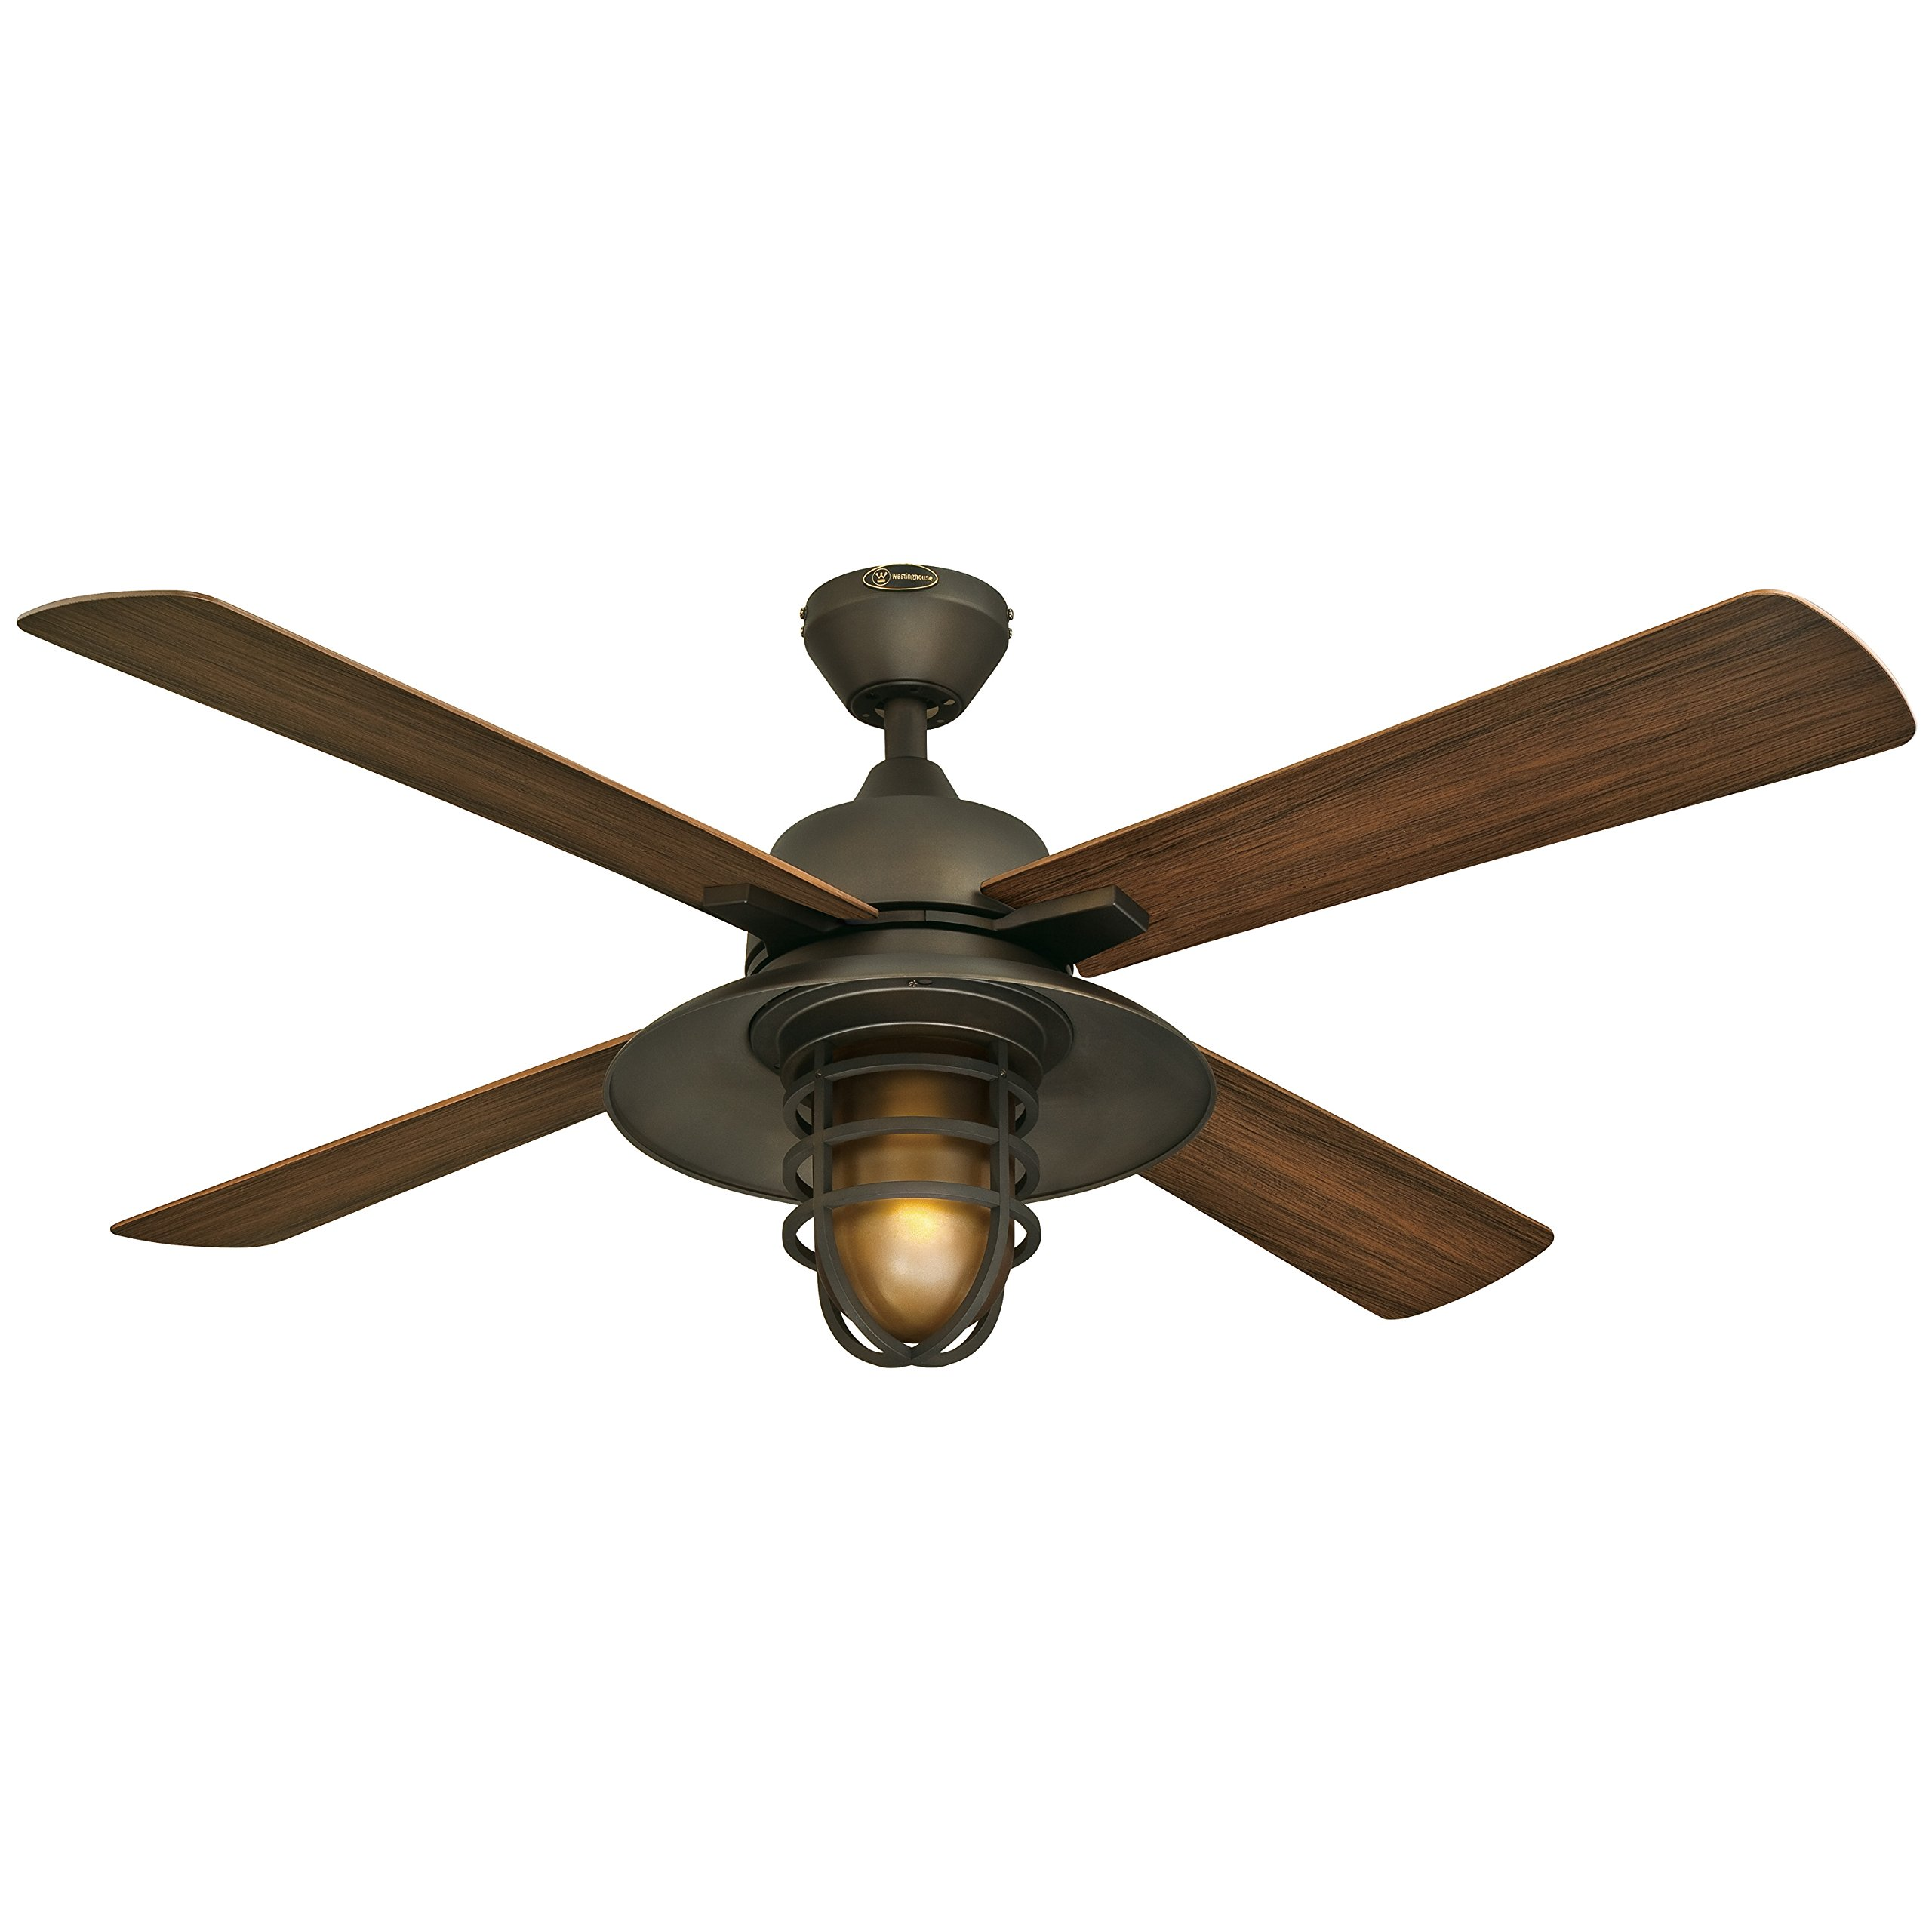 light classic wet bronze emerson seaside em location oil ceilings ceiling orb fan rubbed with kit